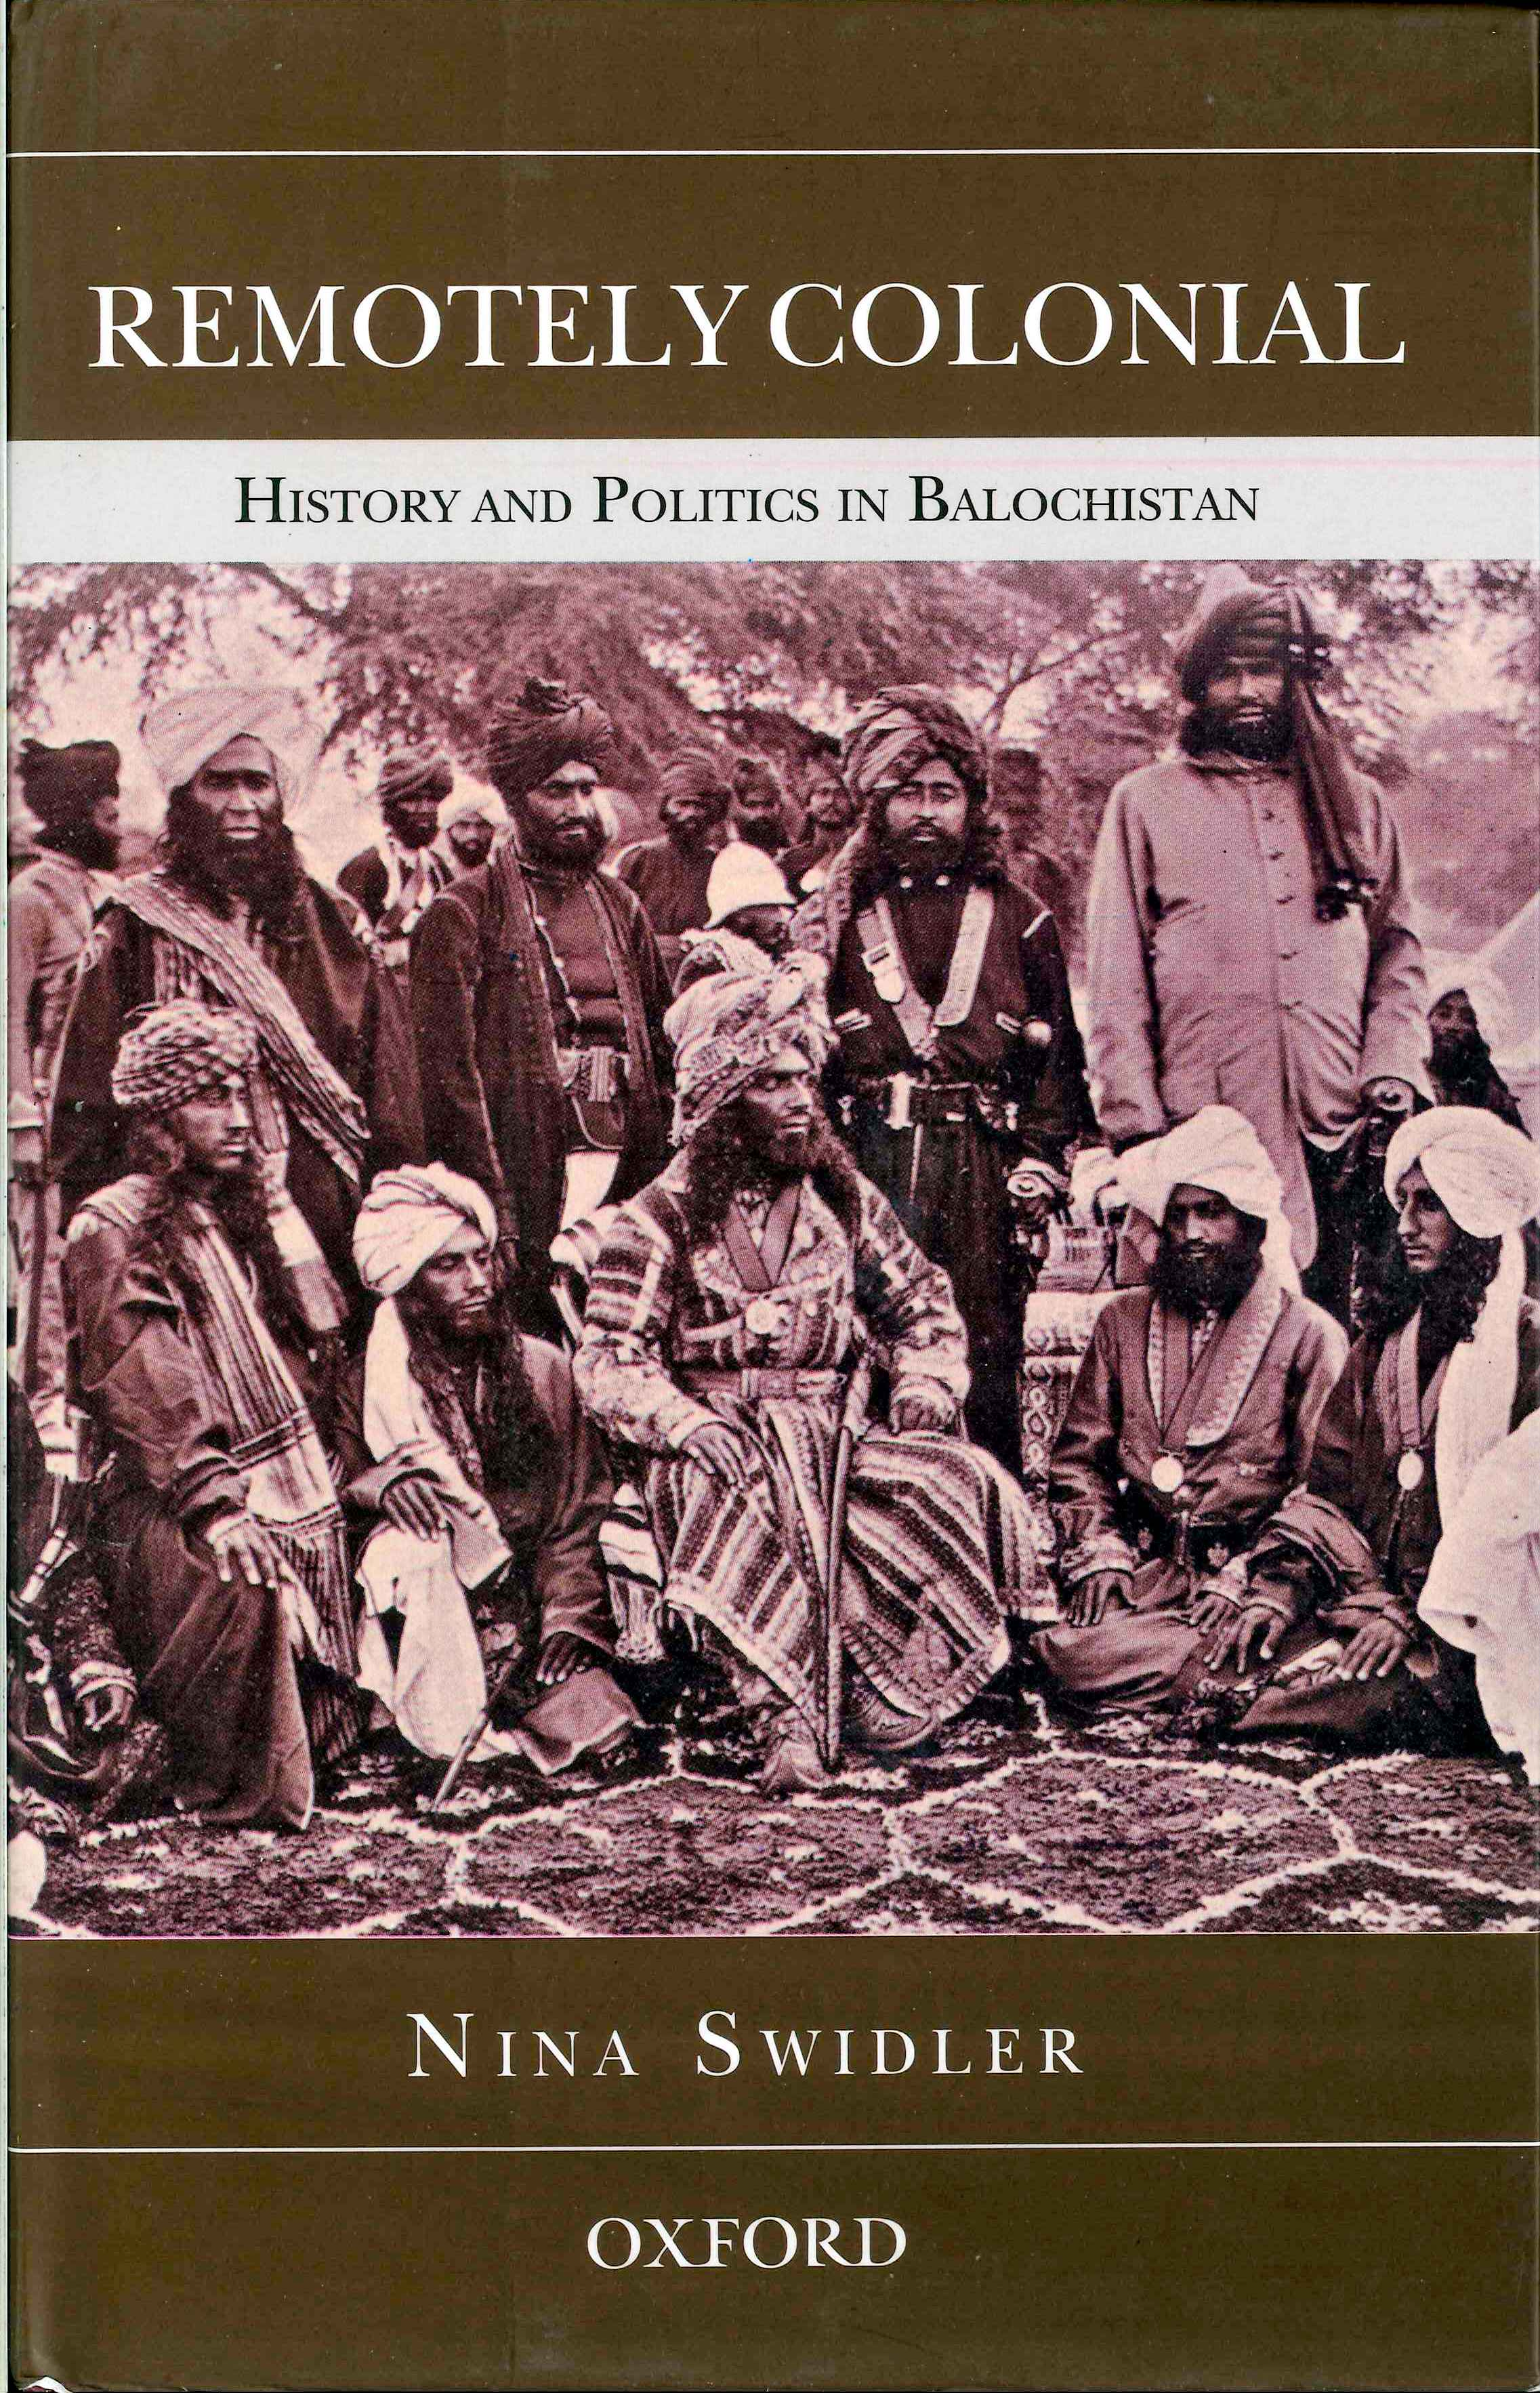 Remotely colonial - Balochistan